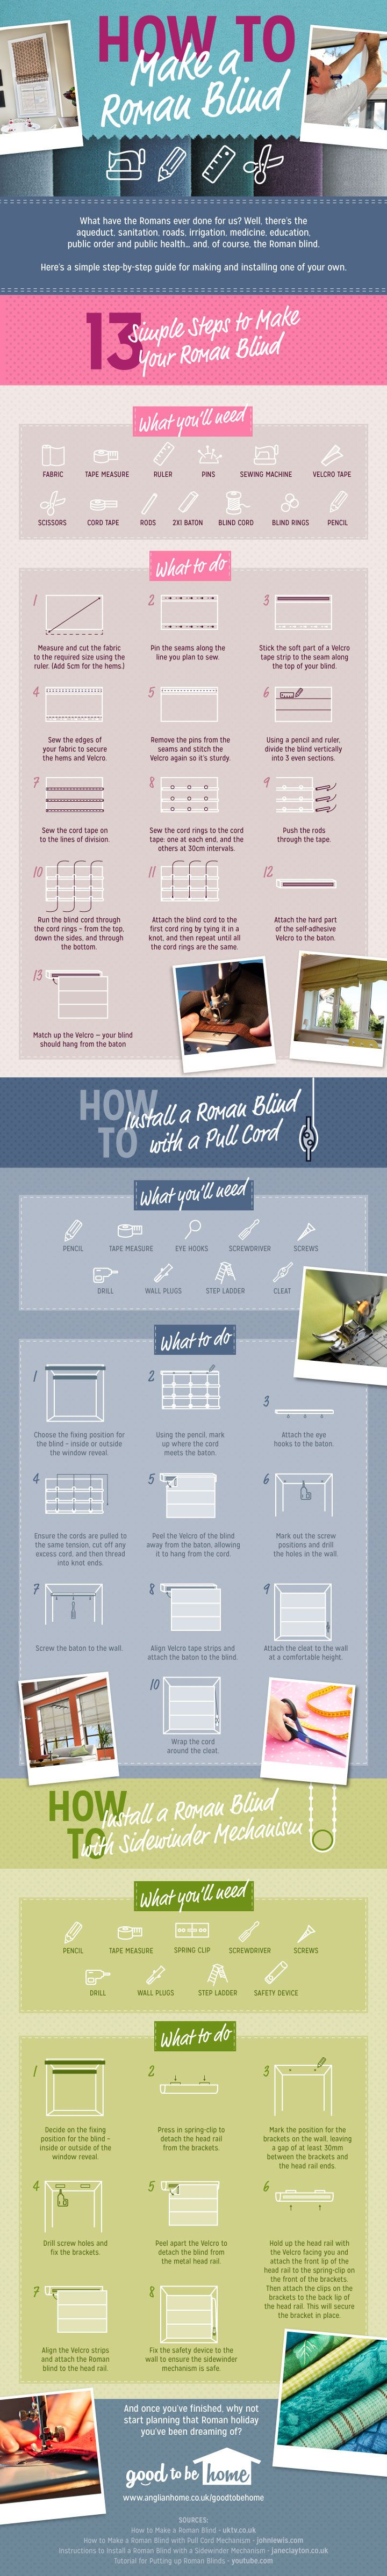 Here's an easy step-by-step Roman blind tutorial. It was created by Good to be Home, a fun website with articles for home owners and DIY enthusiasts.